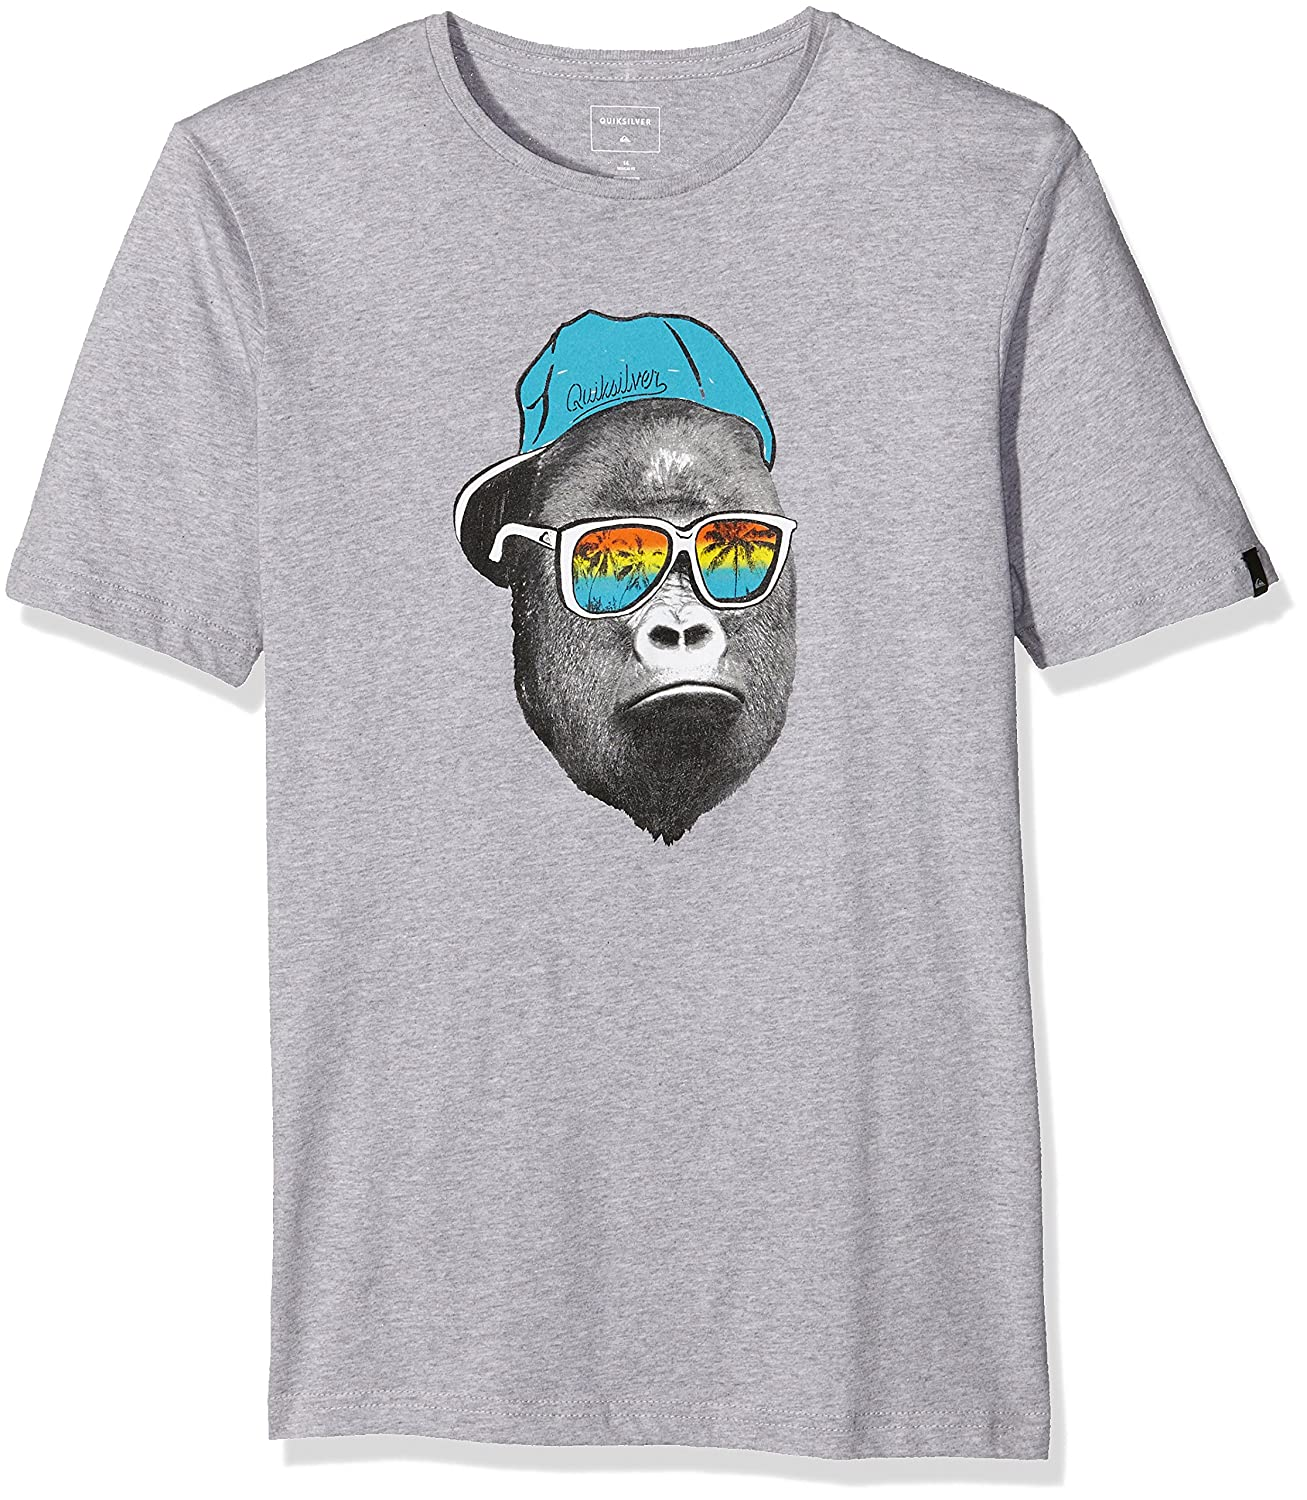 Quiksilver SS ClassicYouth Kong Business - Children's T-Shirt, SS ClassicYouth Kong Business grey EQBZT03354-SGRH-S/10